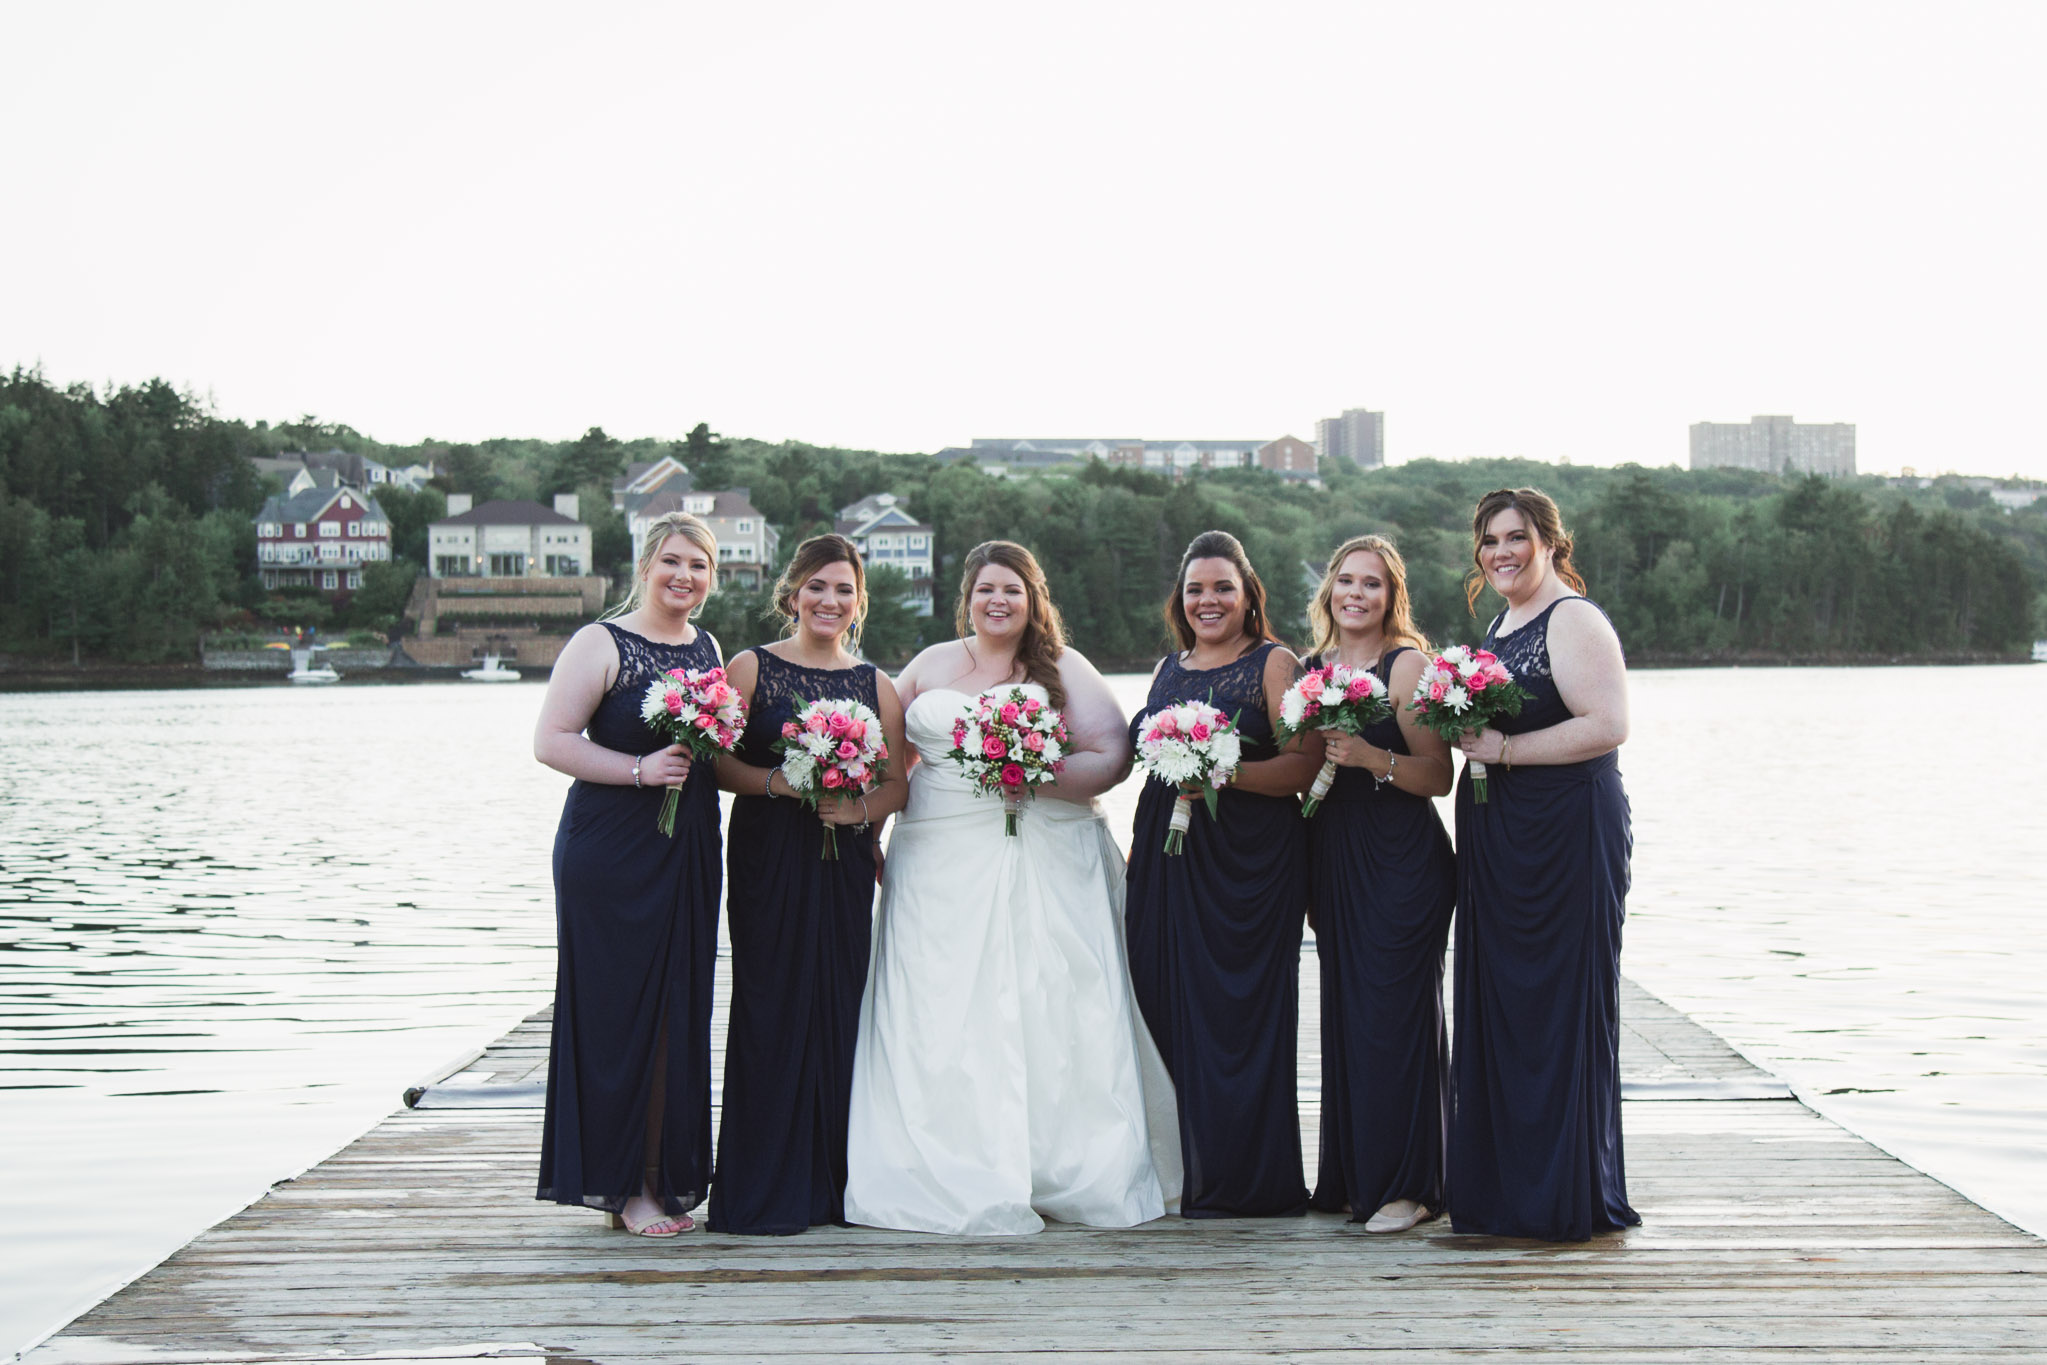 Image of bride and bridesmaids standing on the dock at Saint Mary's boat club